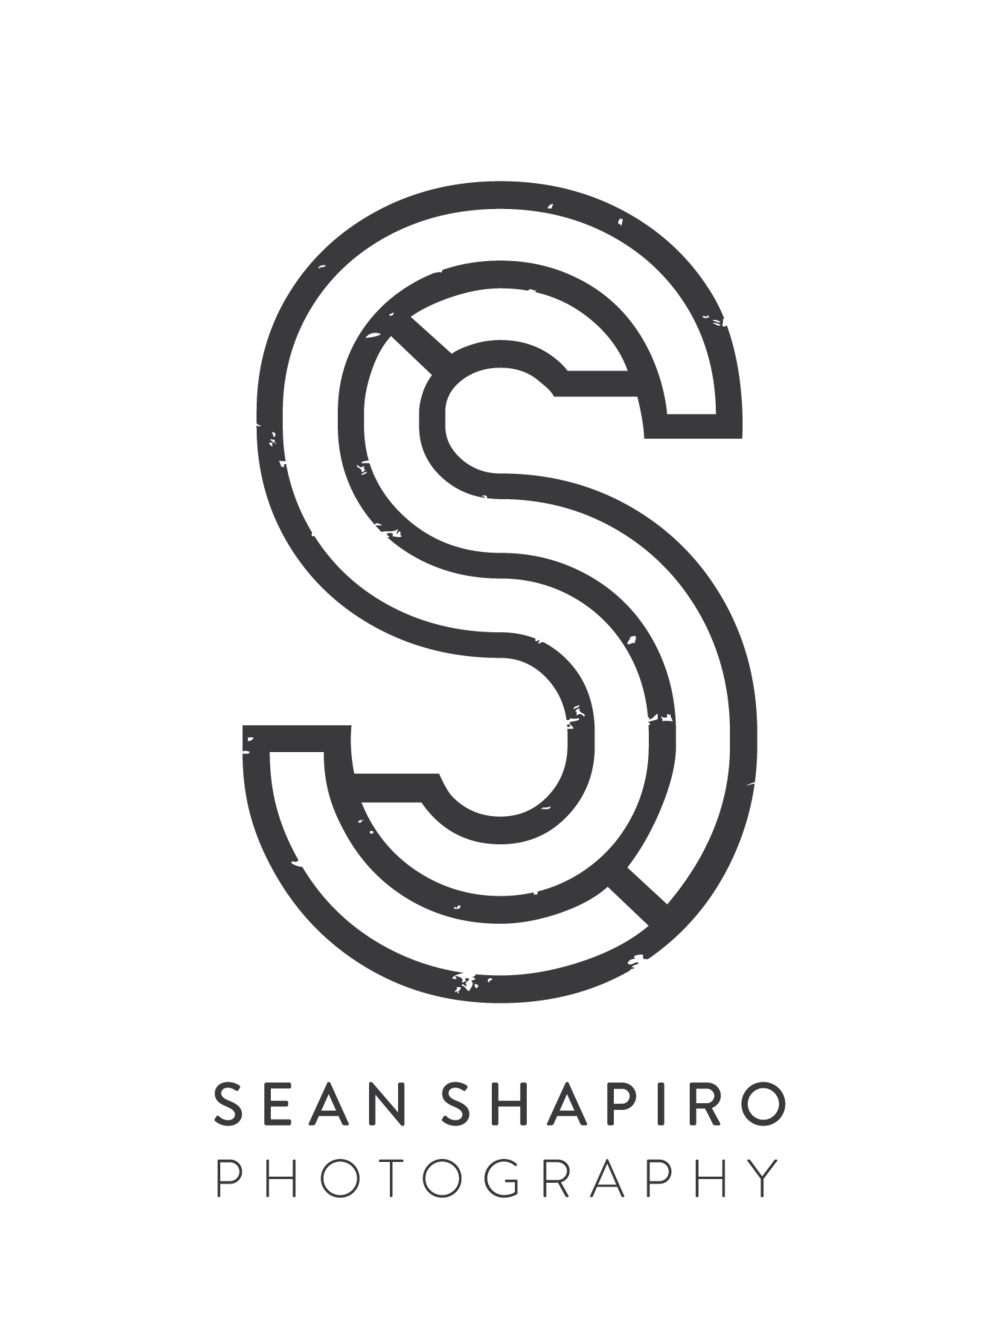 Sean Shapiro Photography